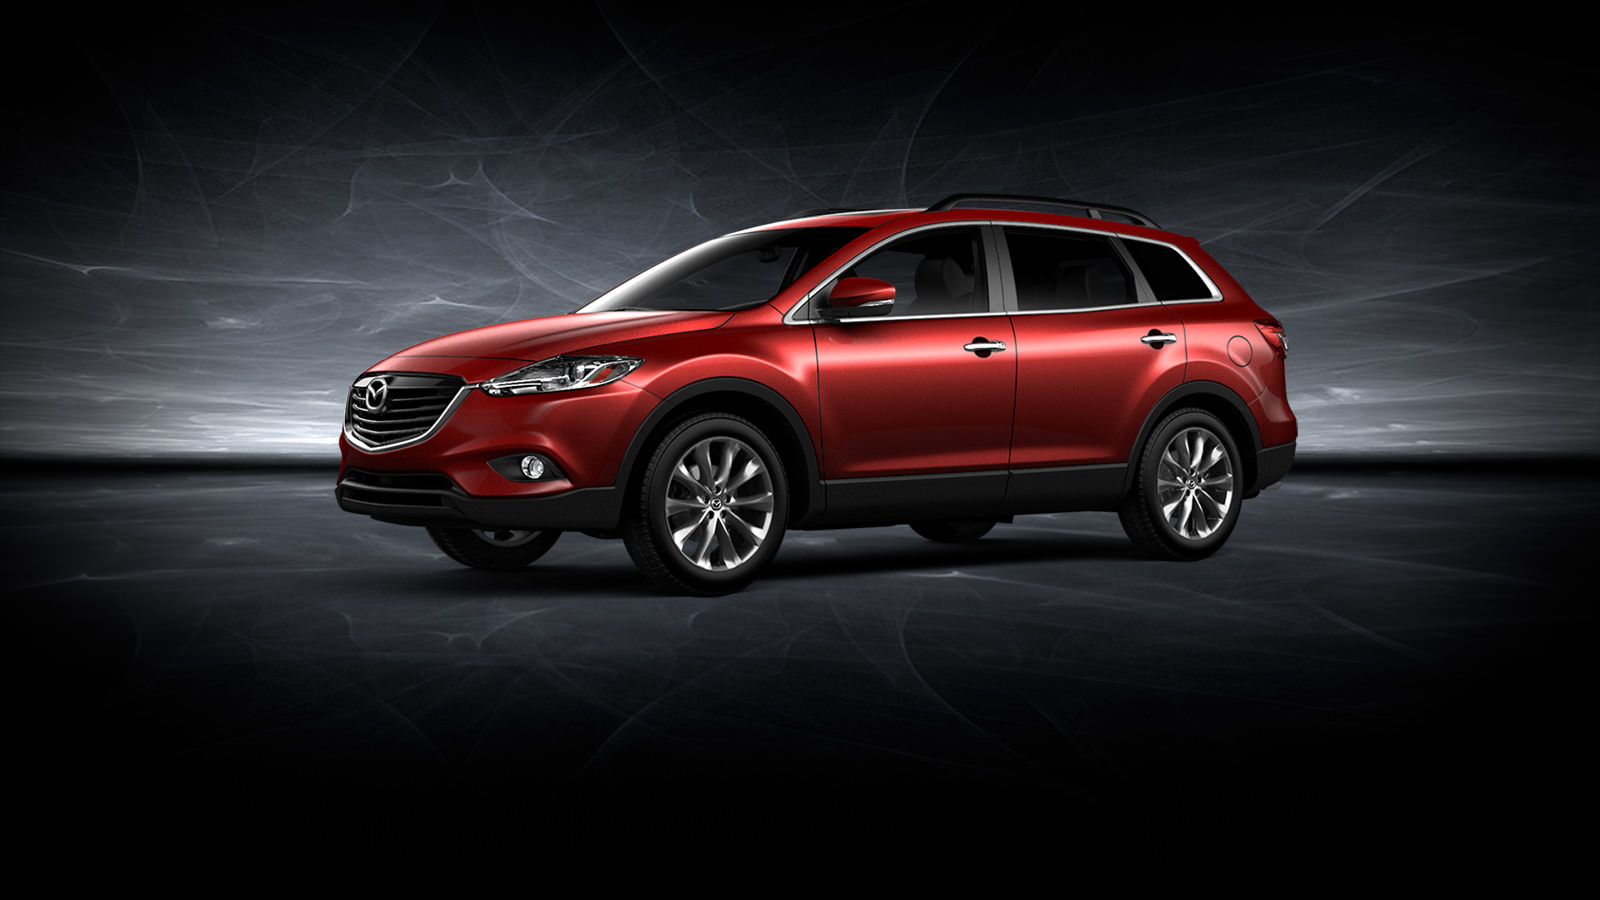 Pictures of mazda cx-9